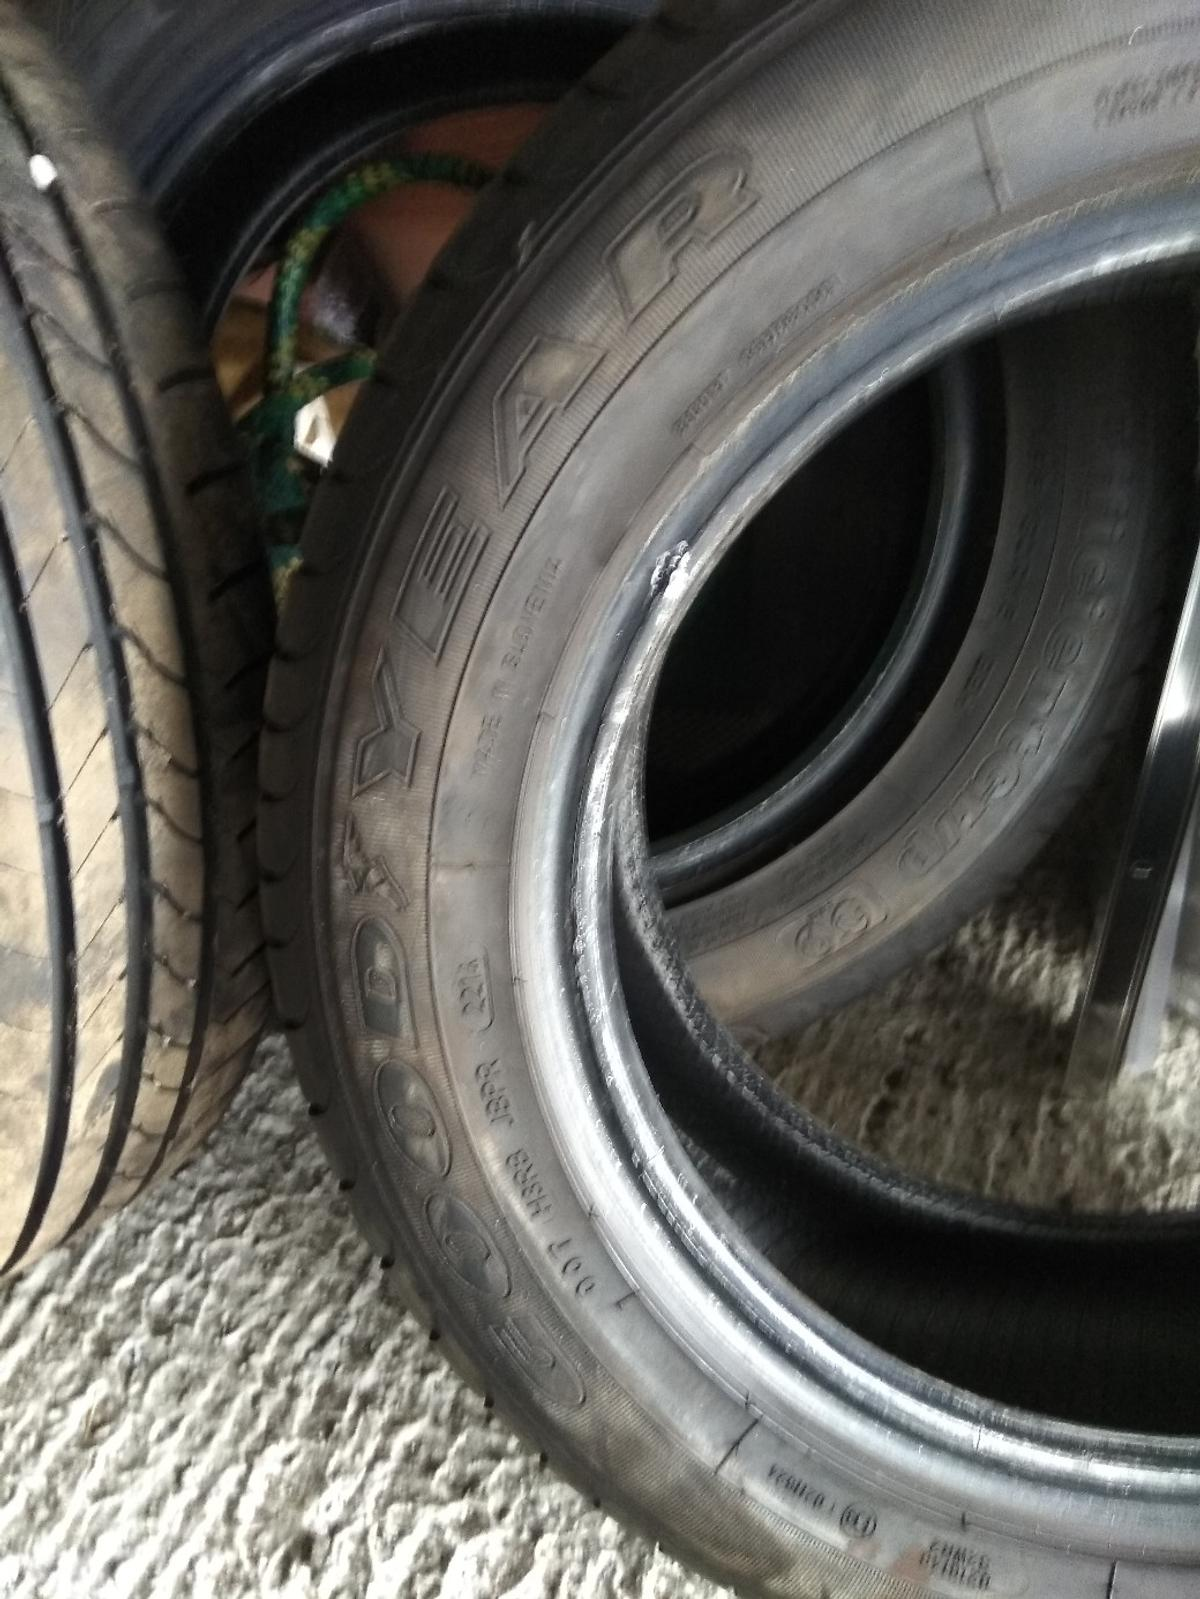 Goodyear Tyres 4 X Goodyear Tyres 195 60 R15 In Rm15 Purfleet For 40 00 For Sale